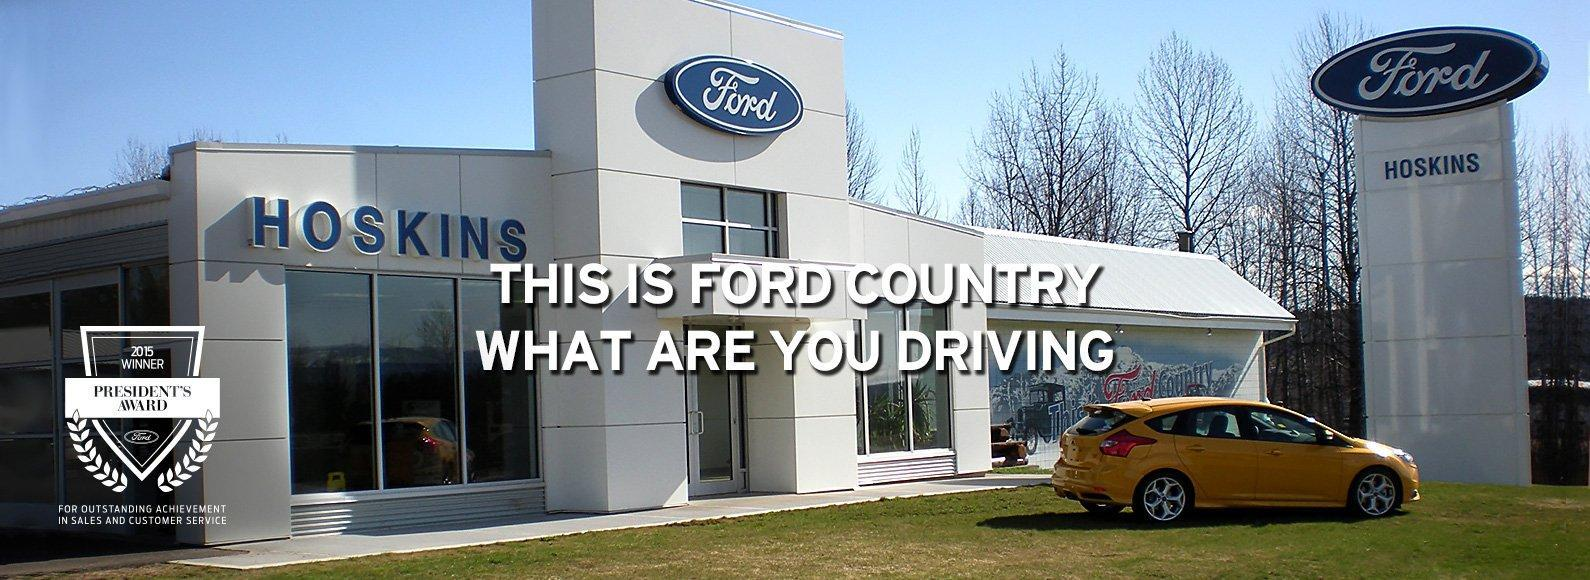 Ford dealer slide